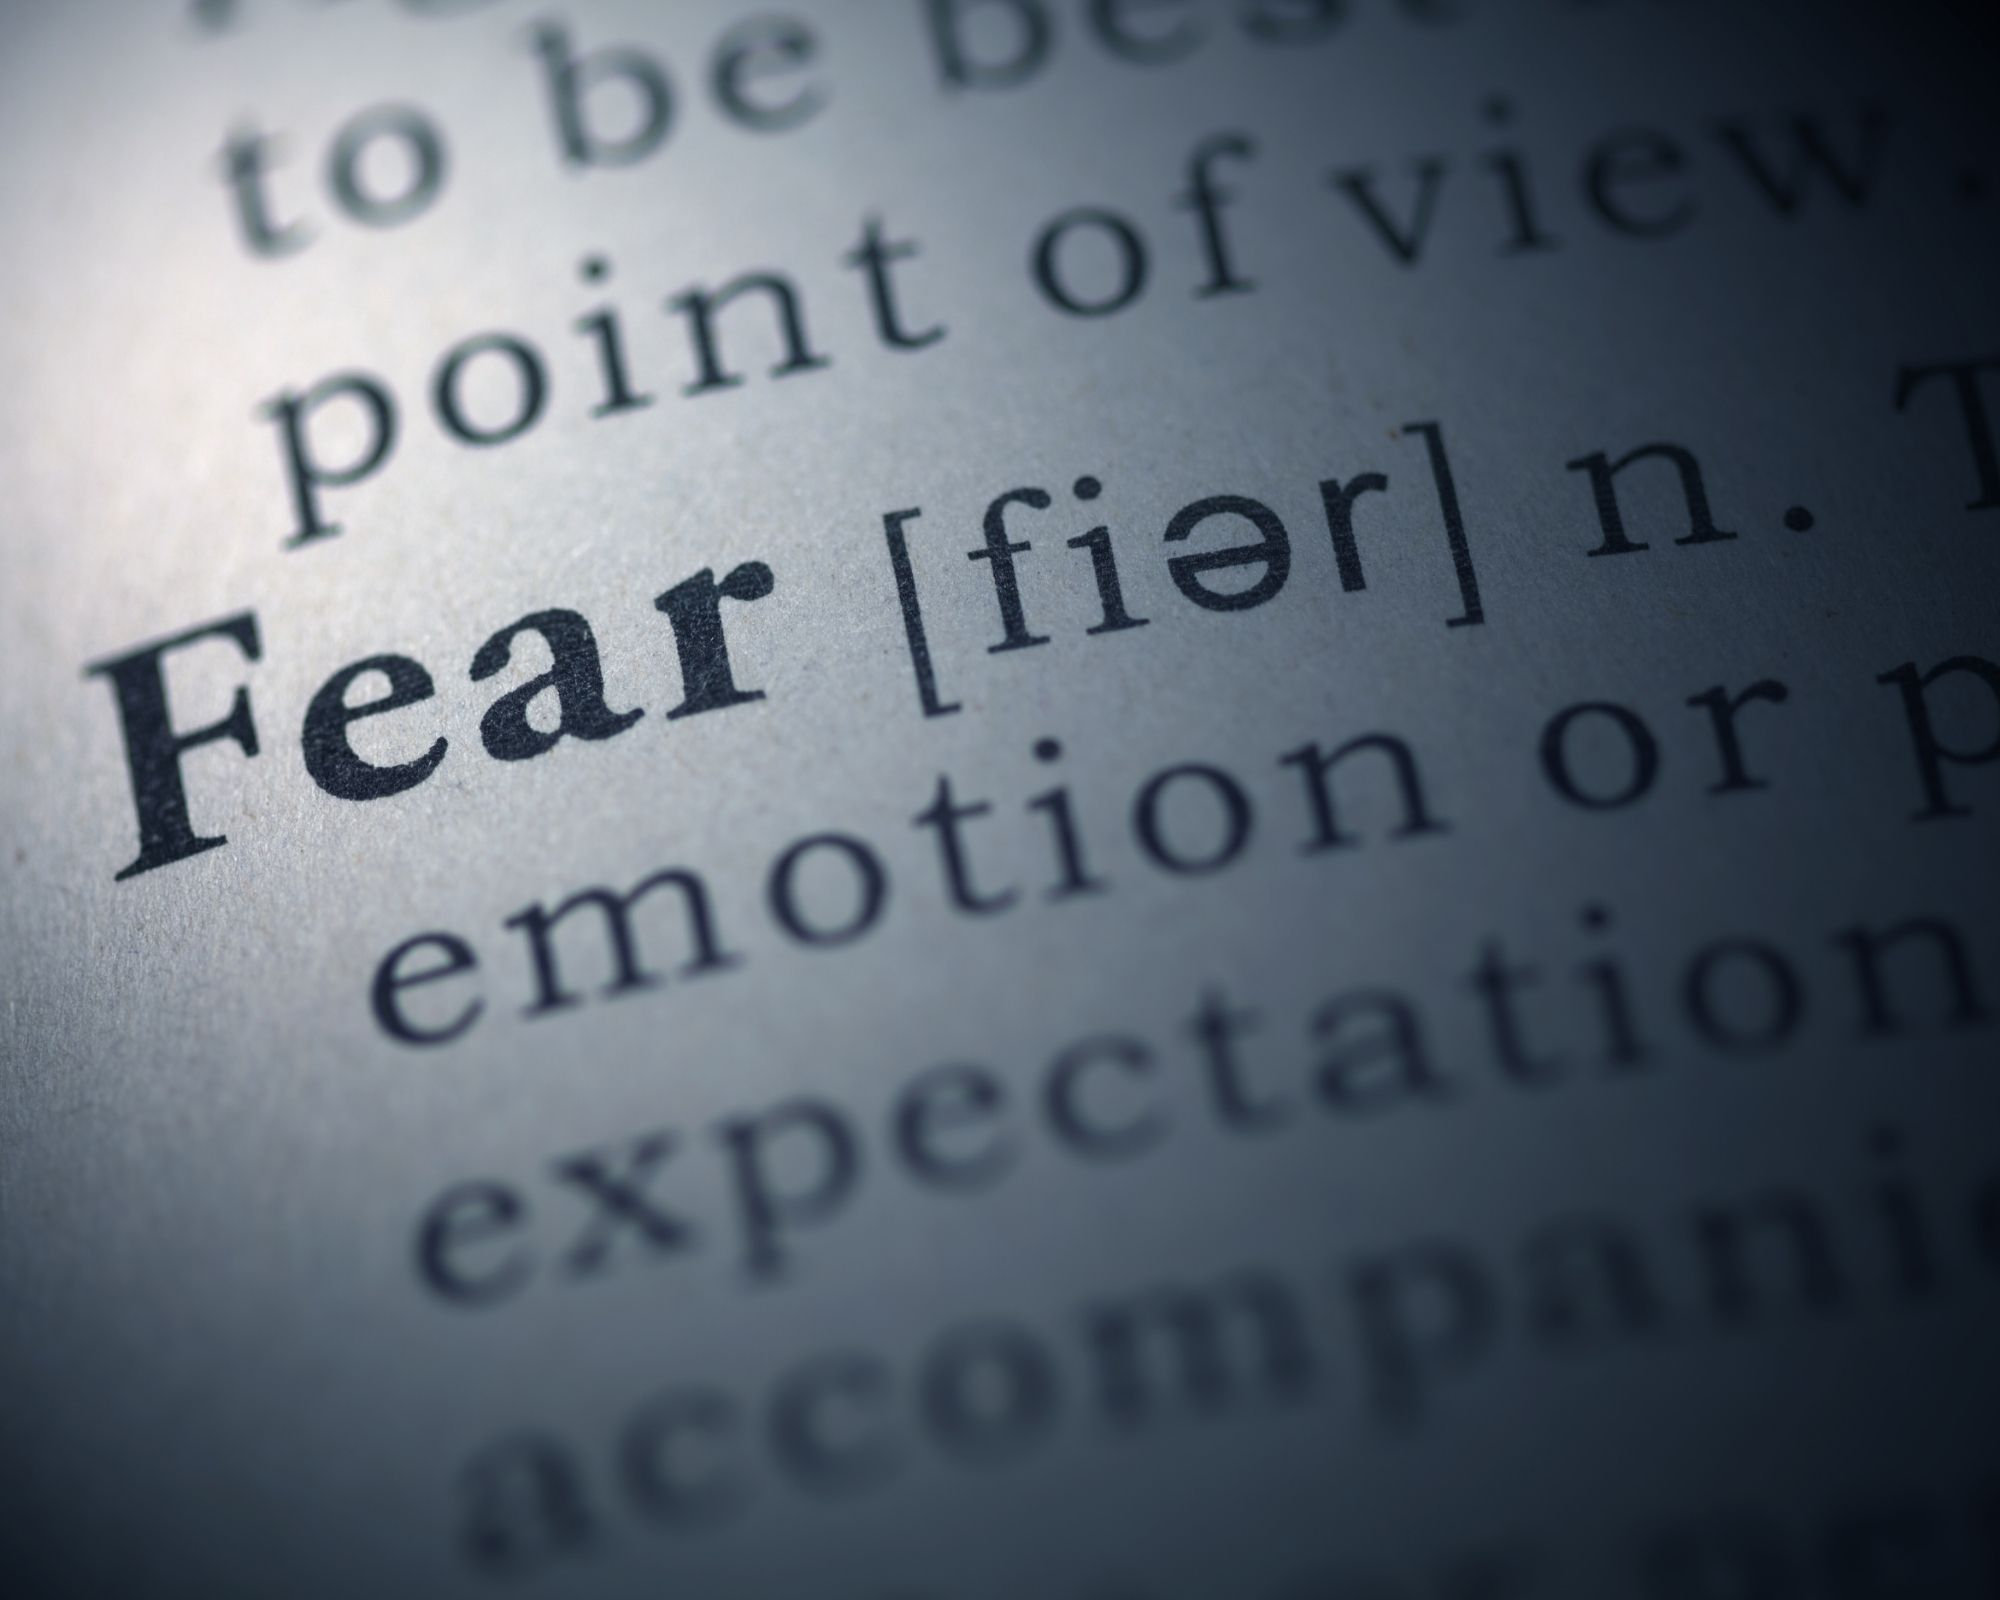 Bolded Word Fear - Related to psoas